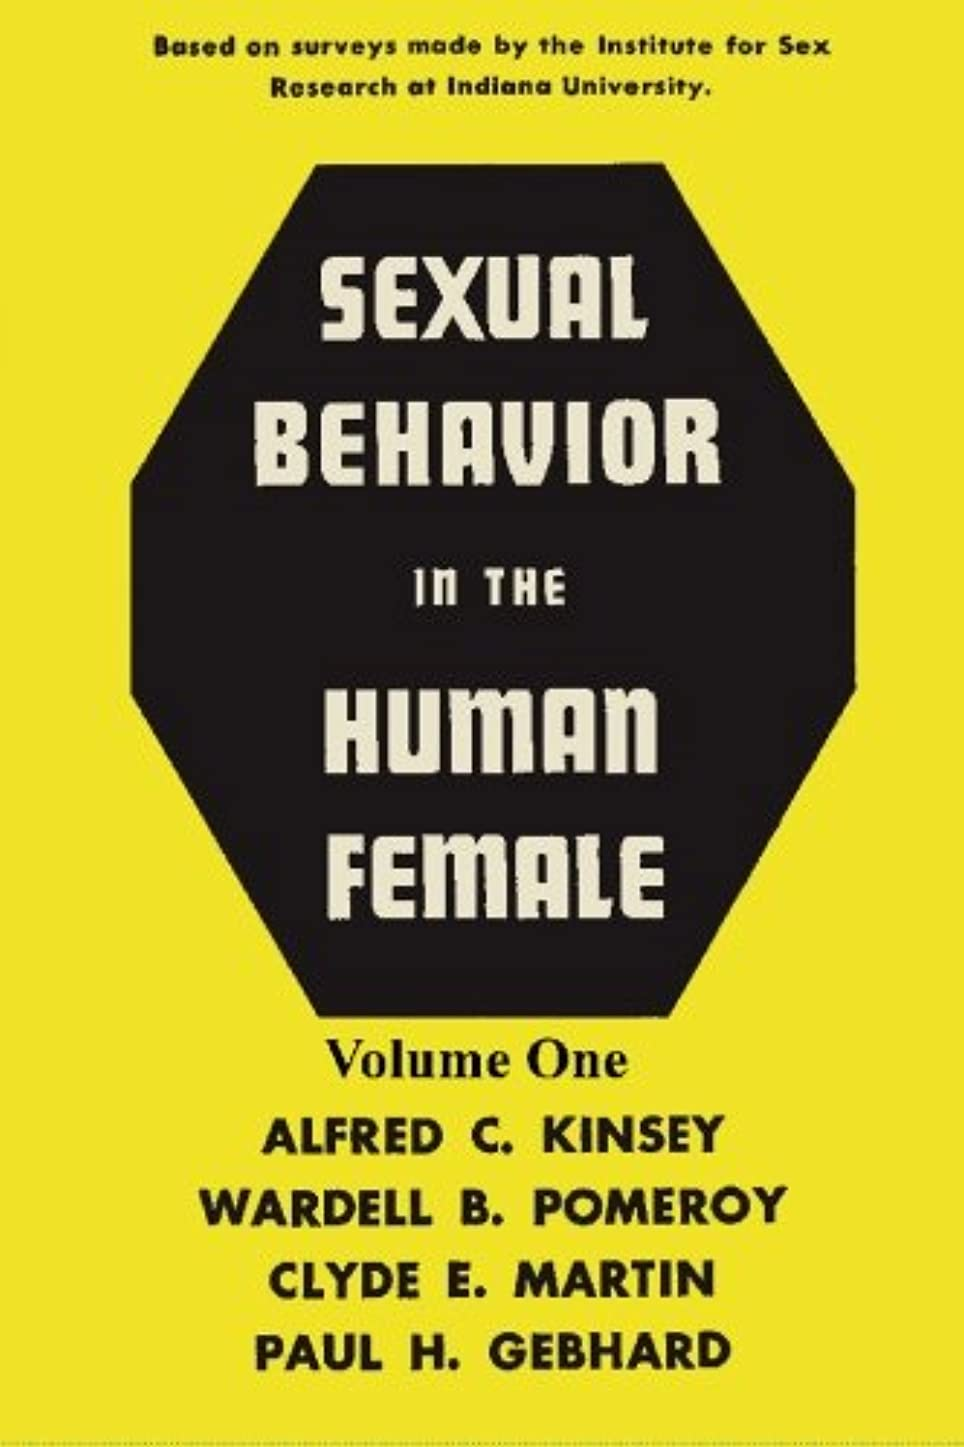 約設定テニスタヒチSexual Behavior in the Human Female, Volume 1